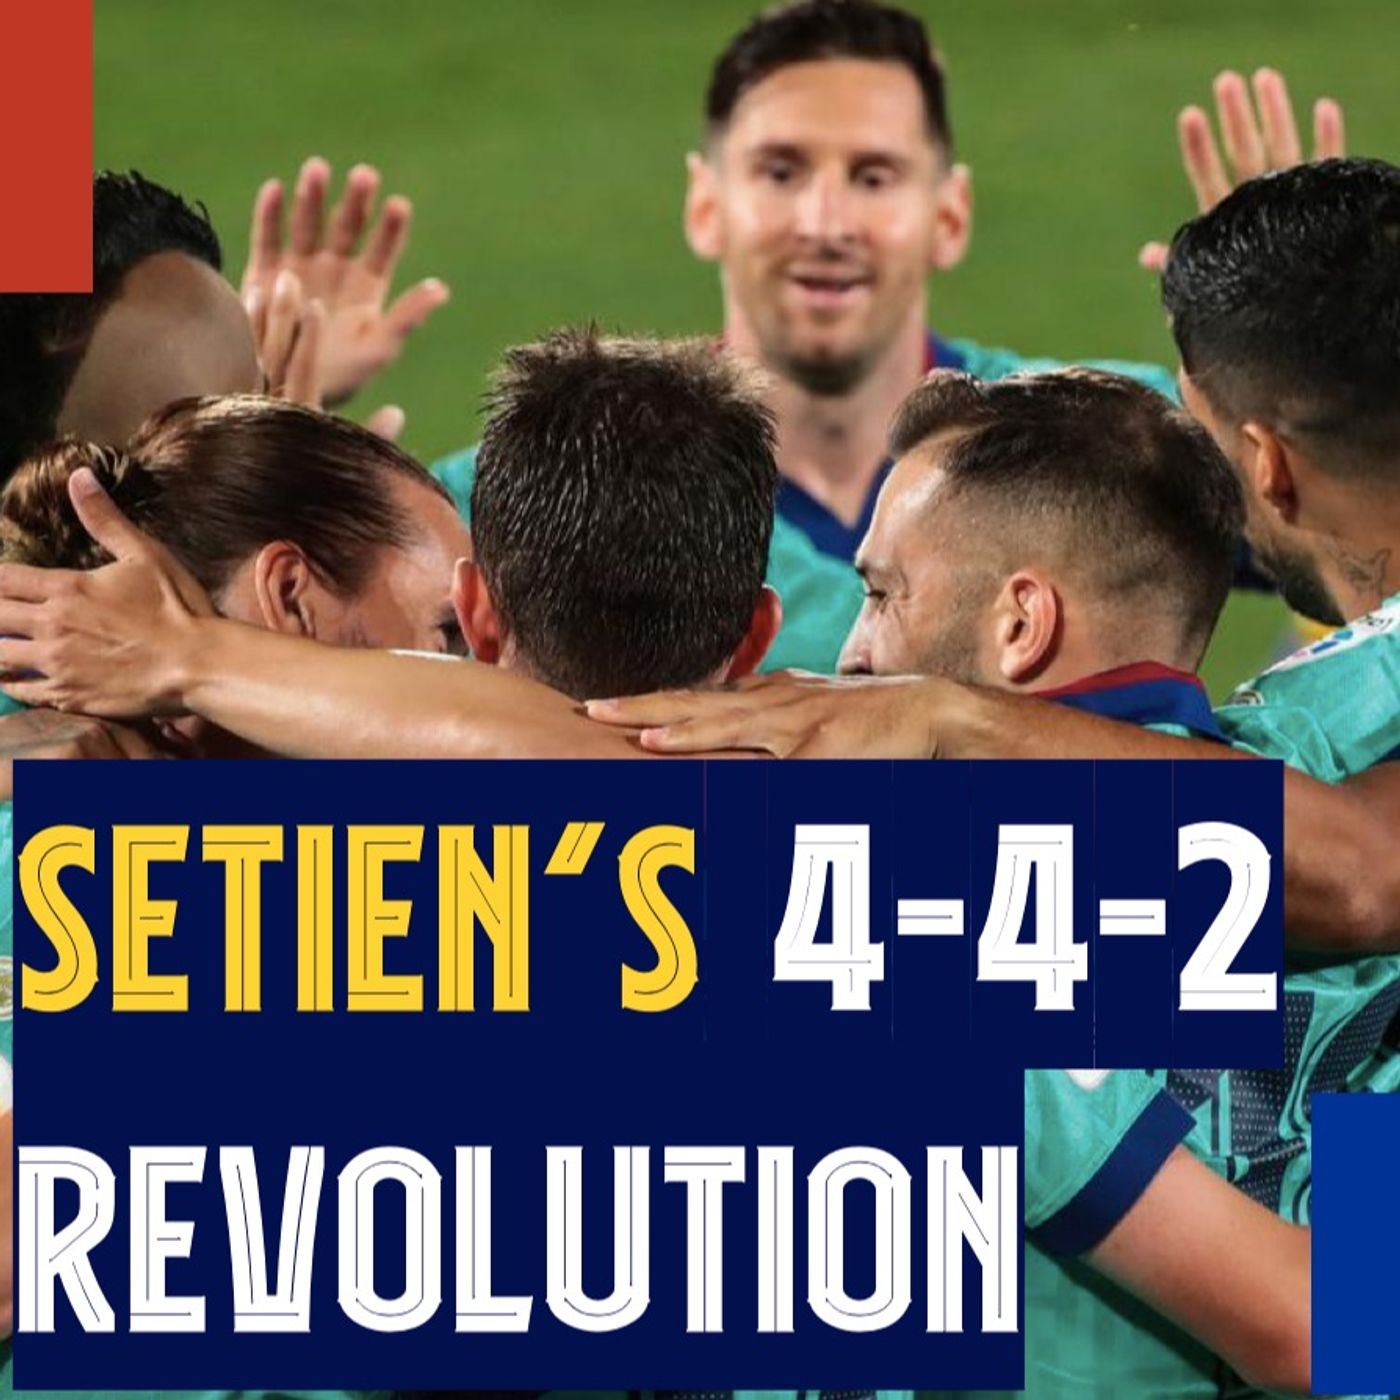 How did Setién's 4-4-2 revive Barcelona? Griezmann resurgence, and Messi's electoral influence